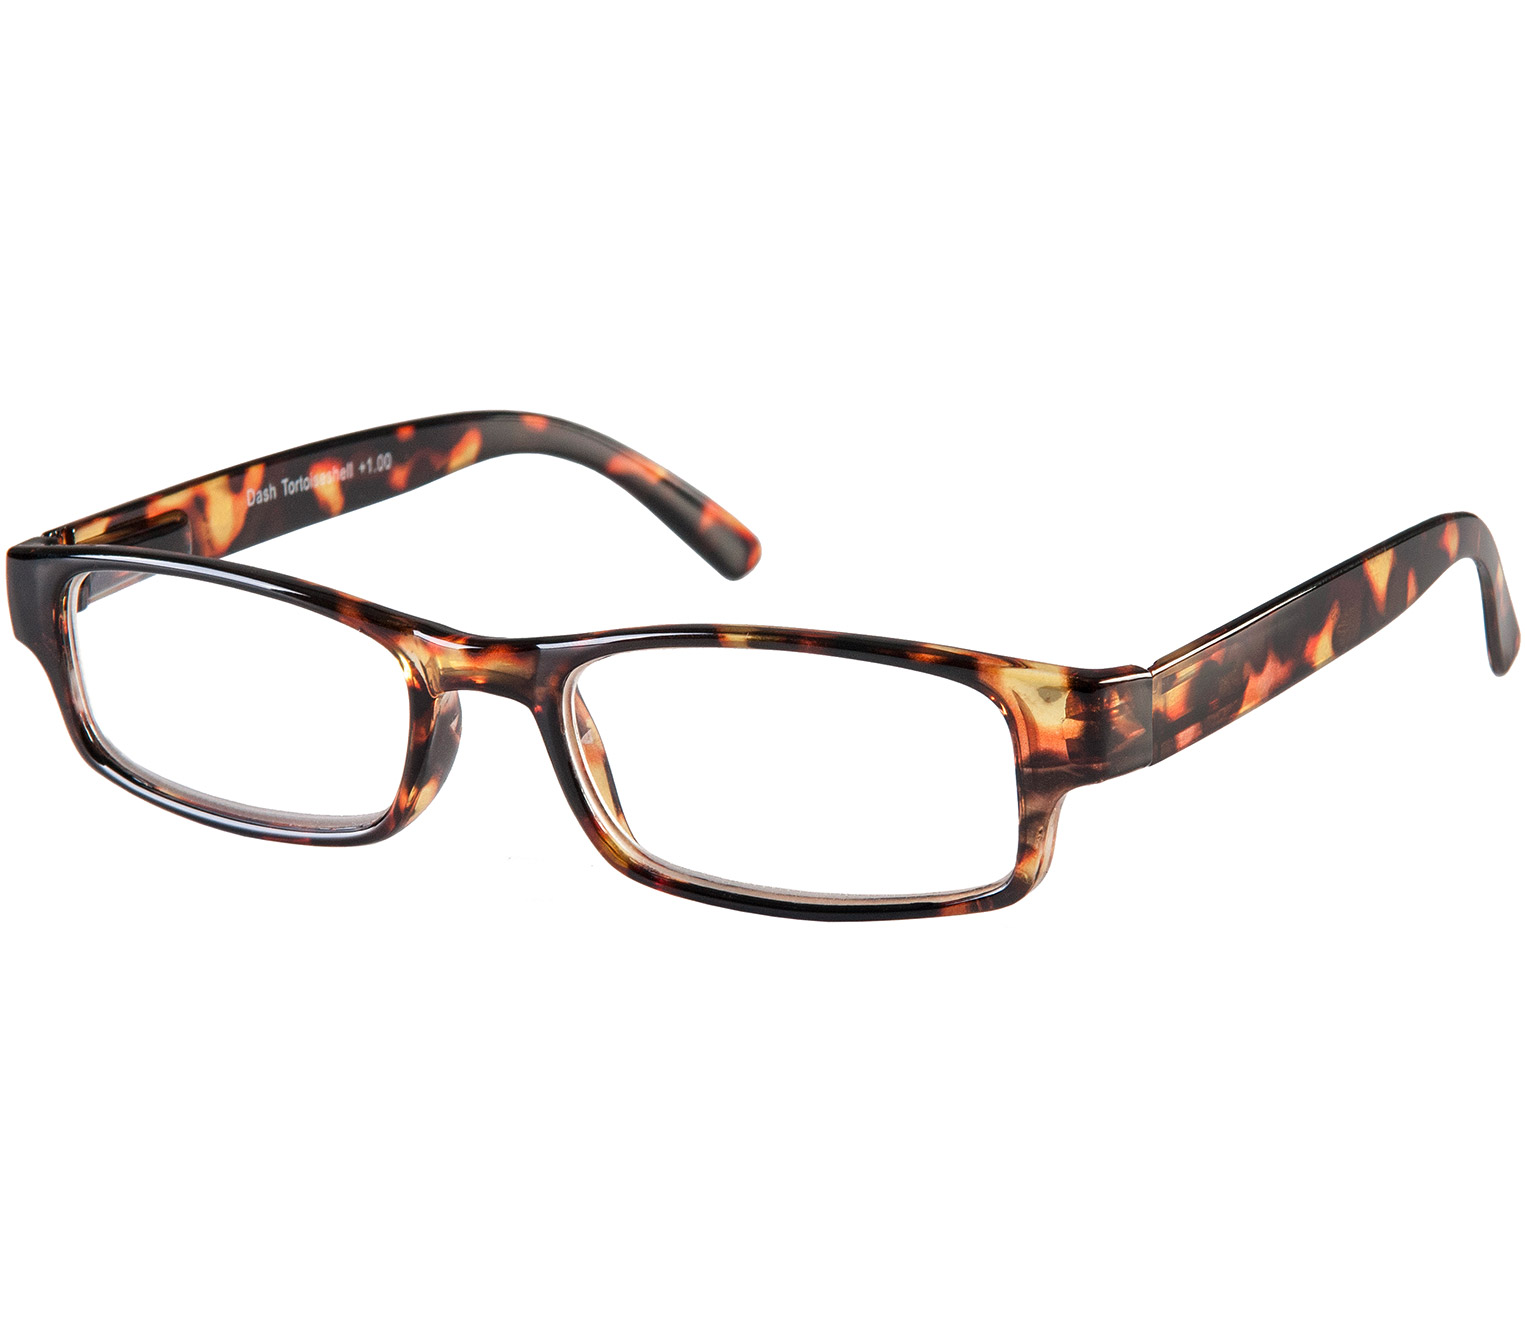 Main Image (Angle) - Dash (Tortoiseshell) Classic Reading Glasses